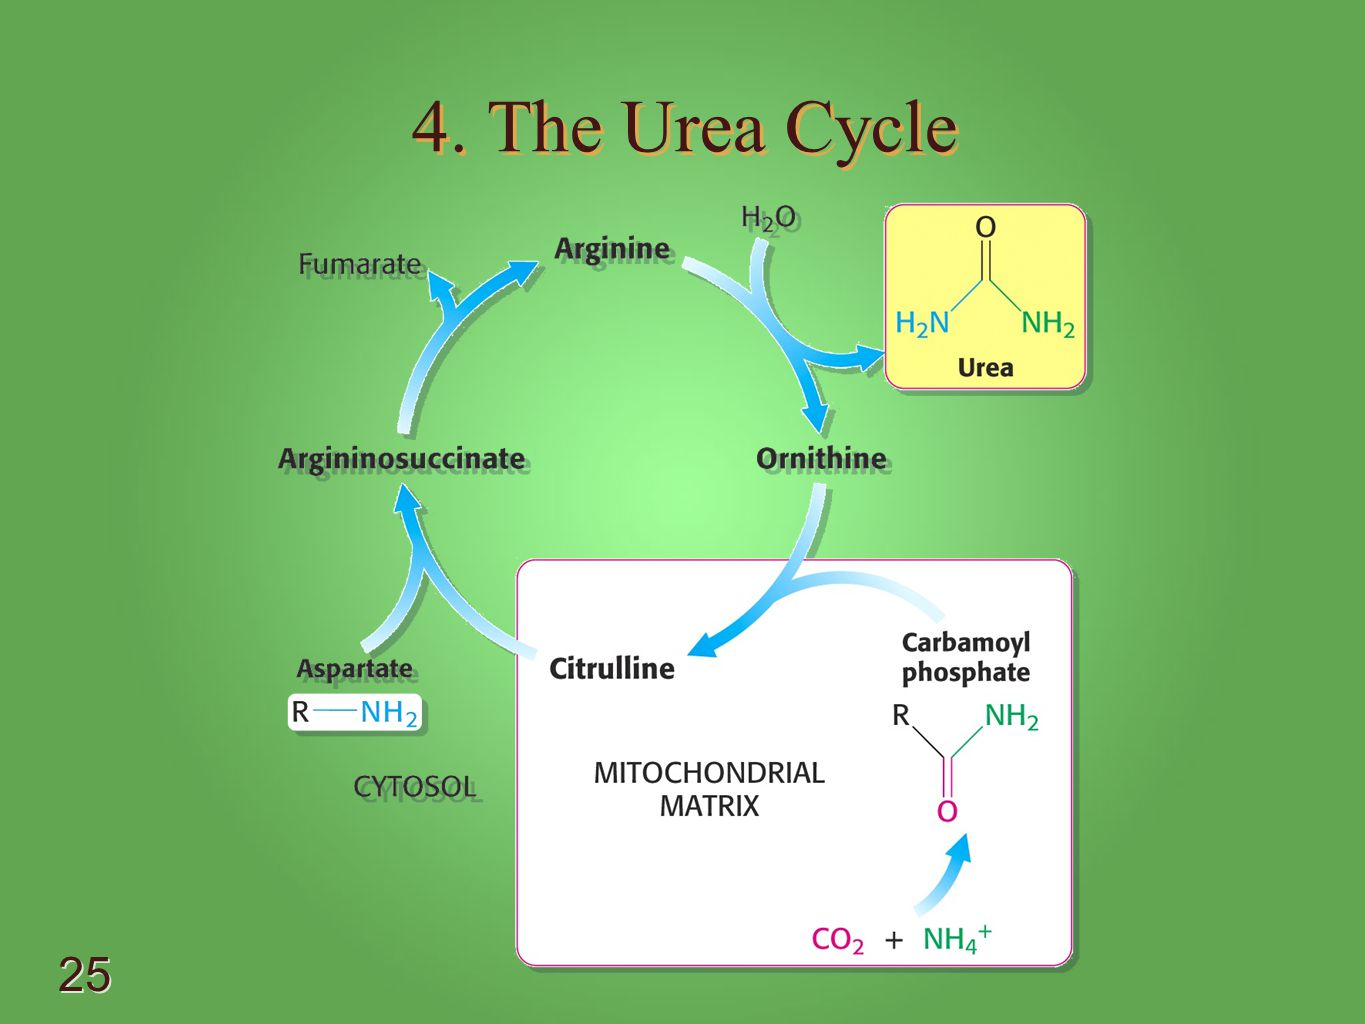 4. The Urea Cycle - Proposed by Hans Krebs and Kurt Henseleit in 1932